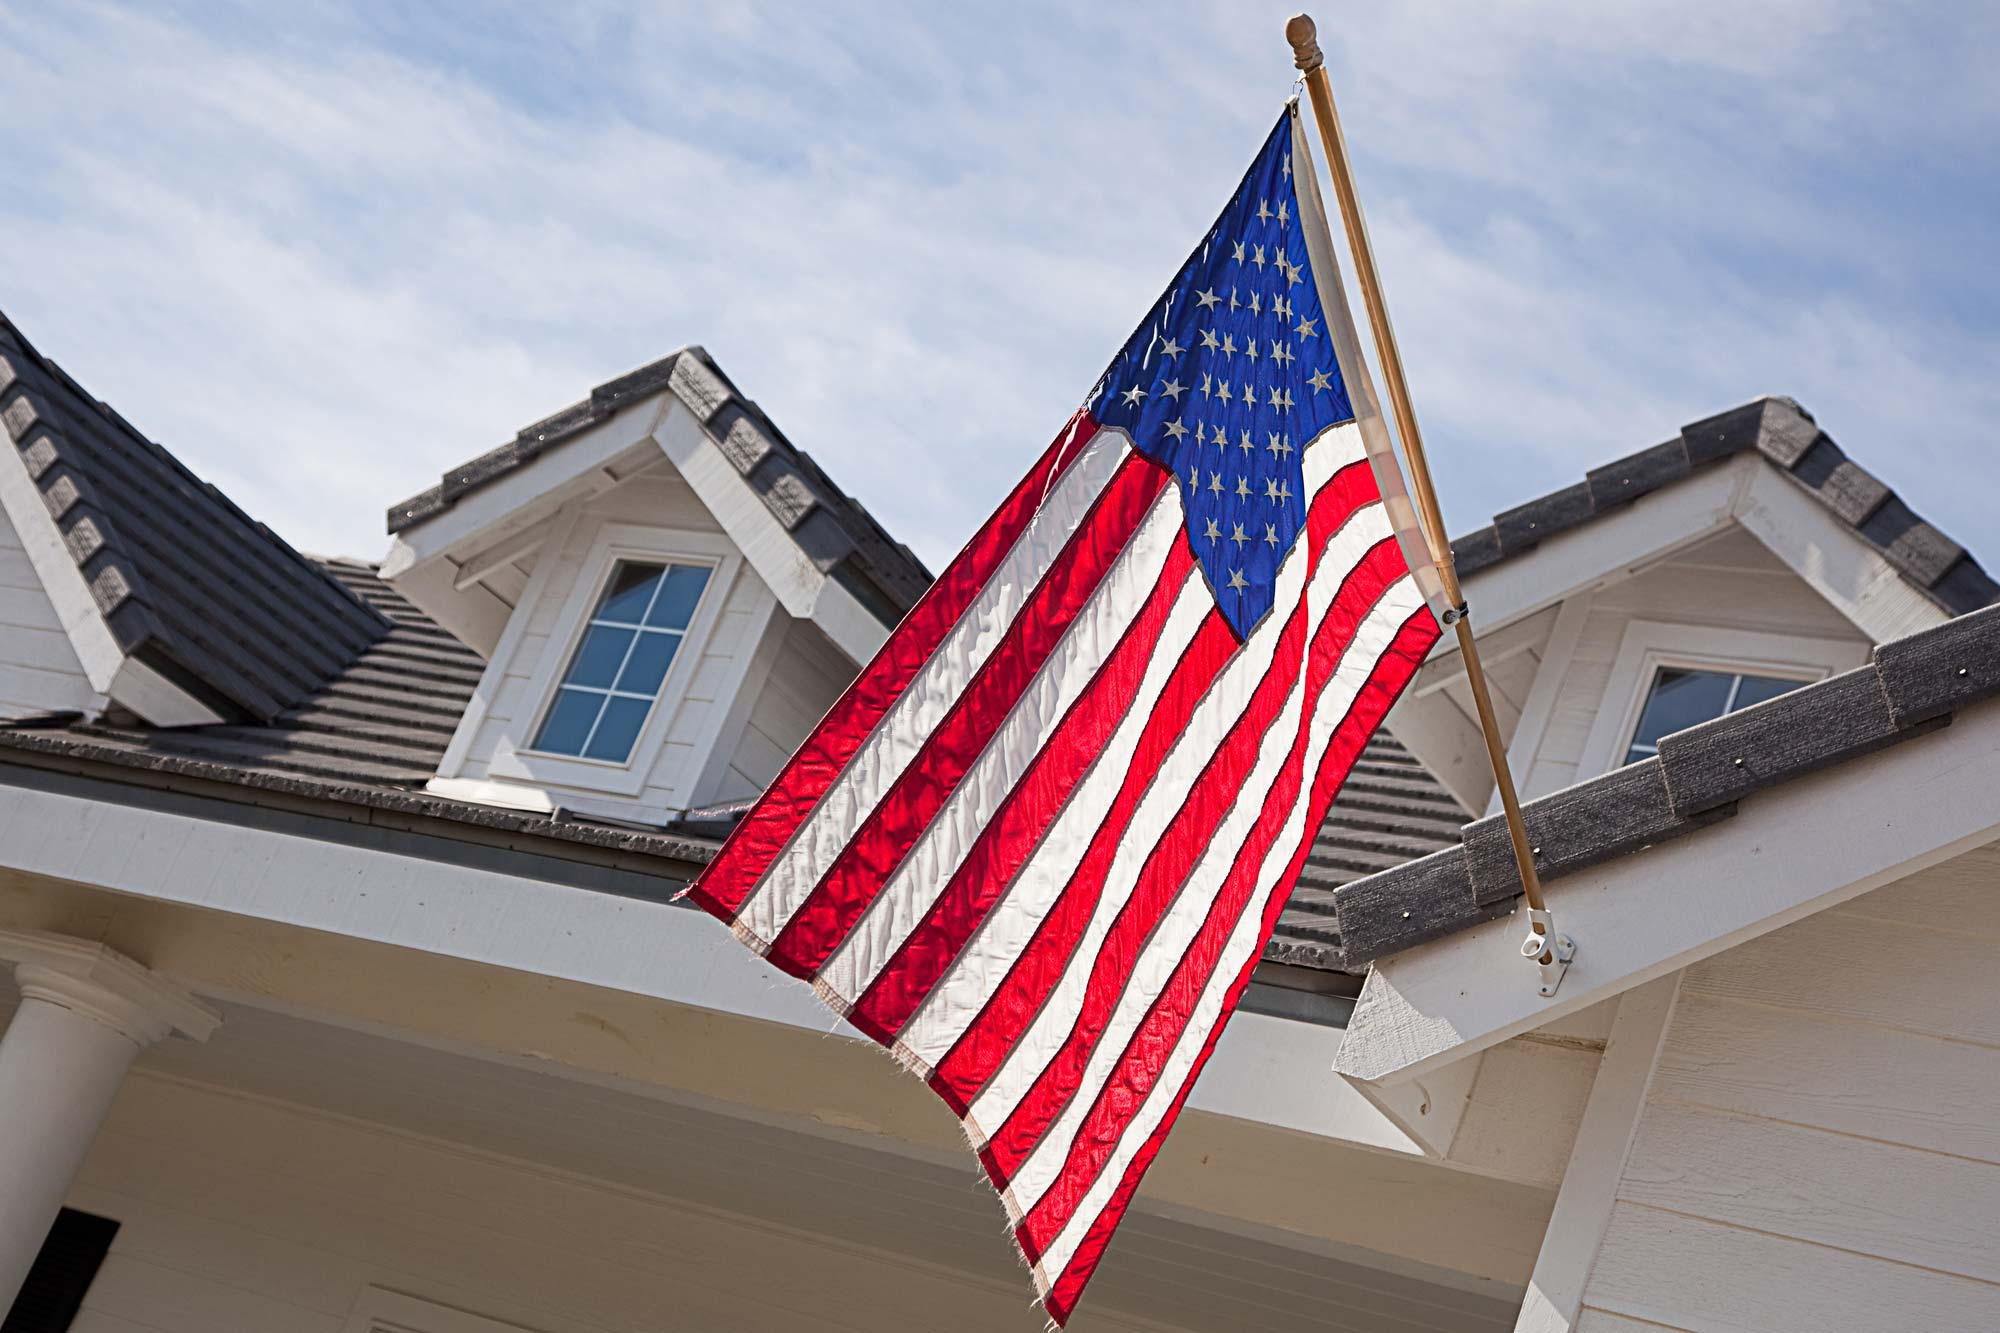 House exterior with an American flag seen while performing home inspection services